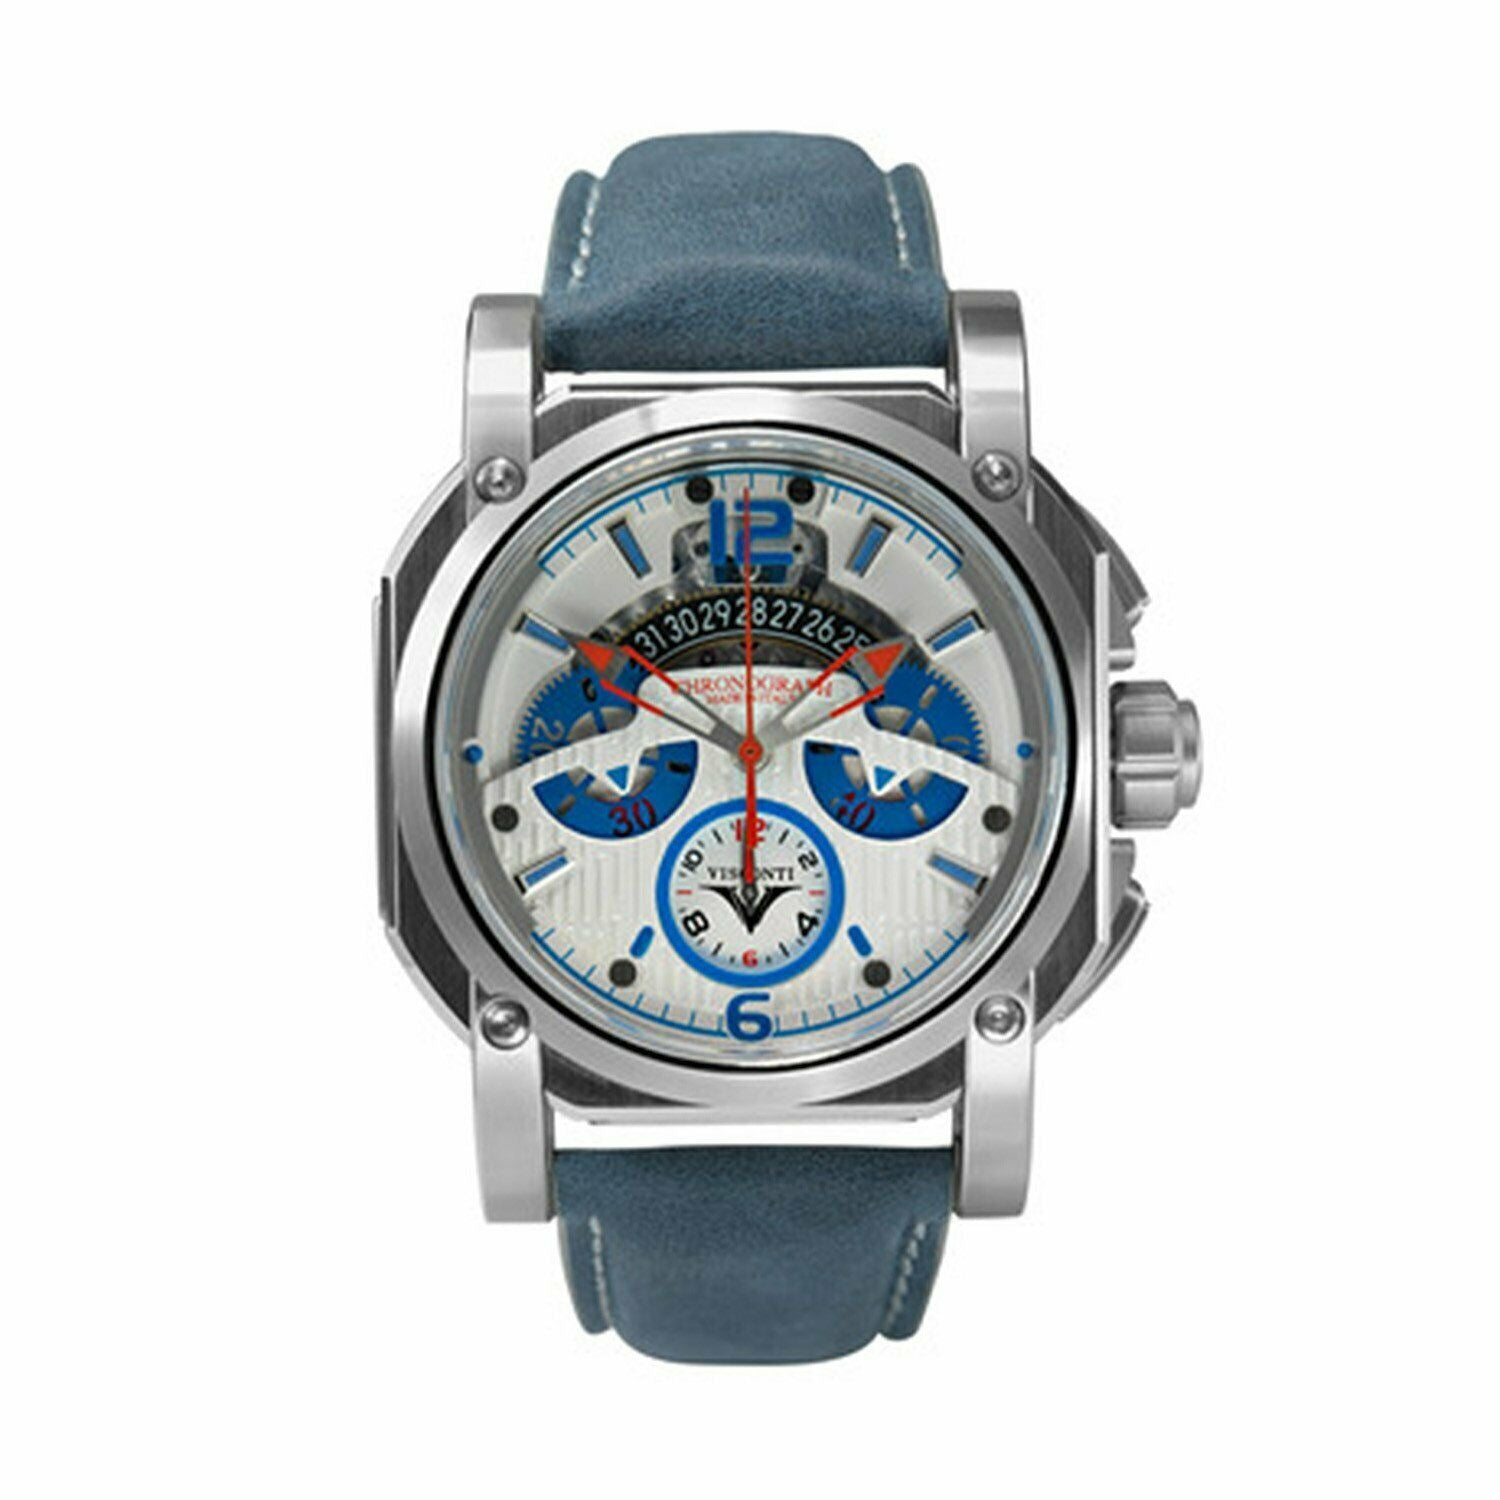 Visconti Automatic Watch 2Squared Chrono Speedboat Blue Leather KW35-02 - Watches & Crystals